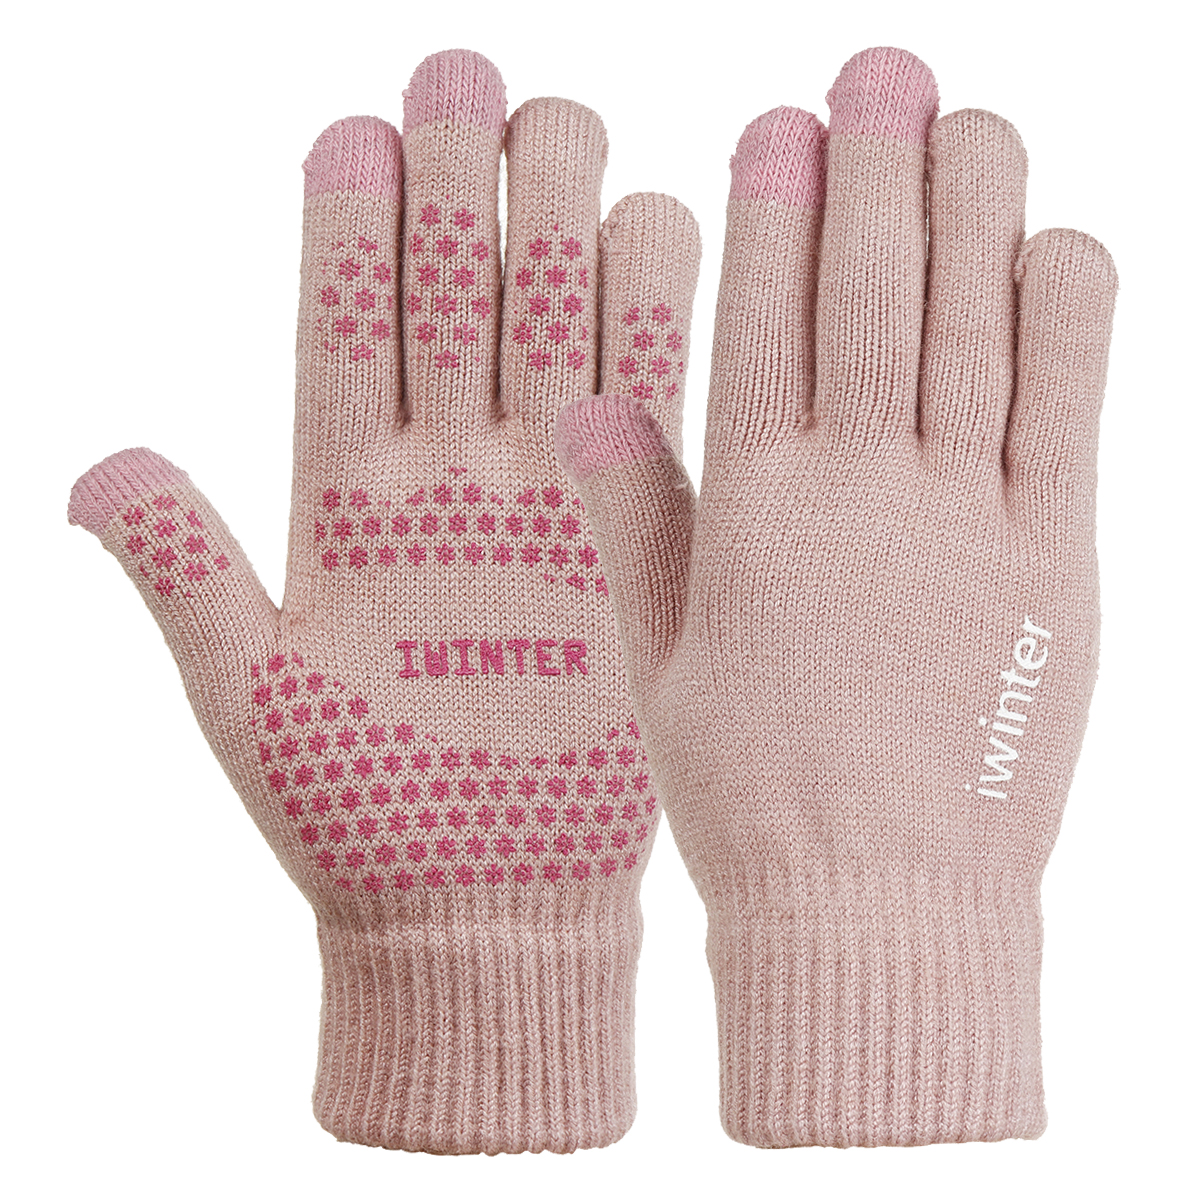 Knitted Touch Screen Outdoor Gloves Motorcycle Winter Warm Windproof Fleece Lined Thermal Non-slip